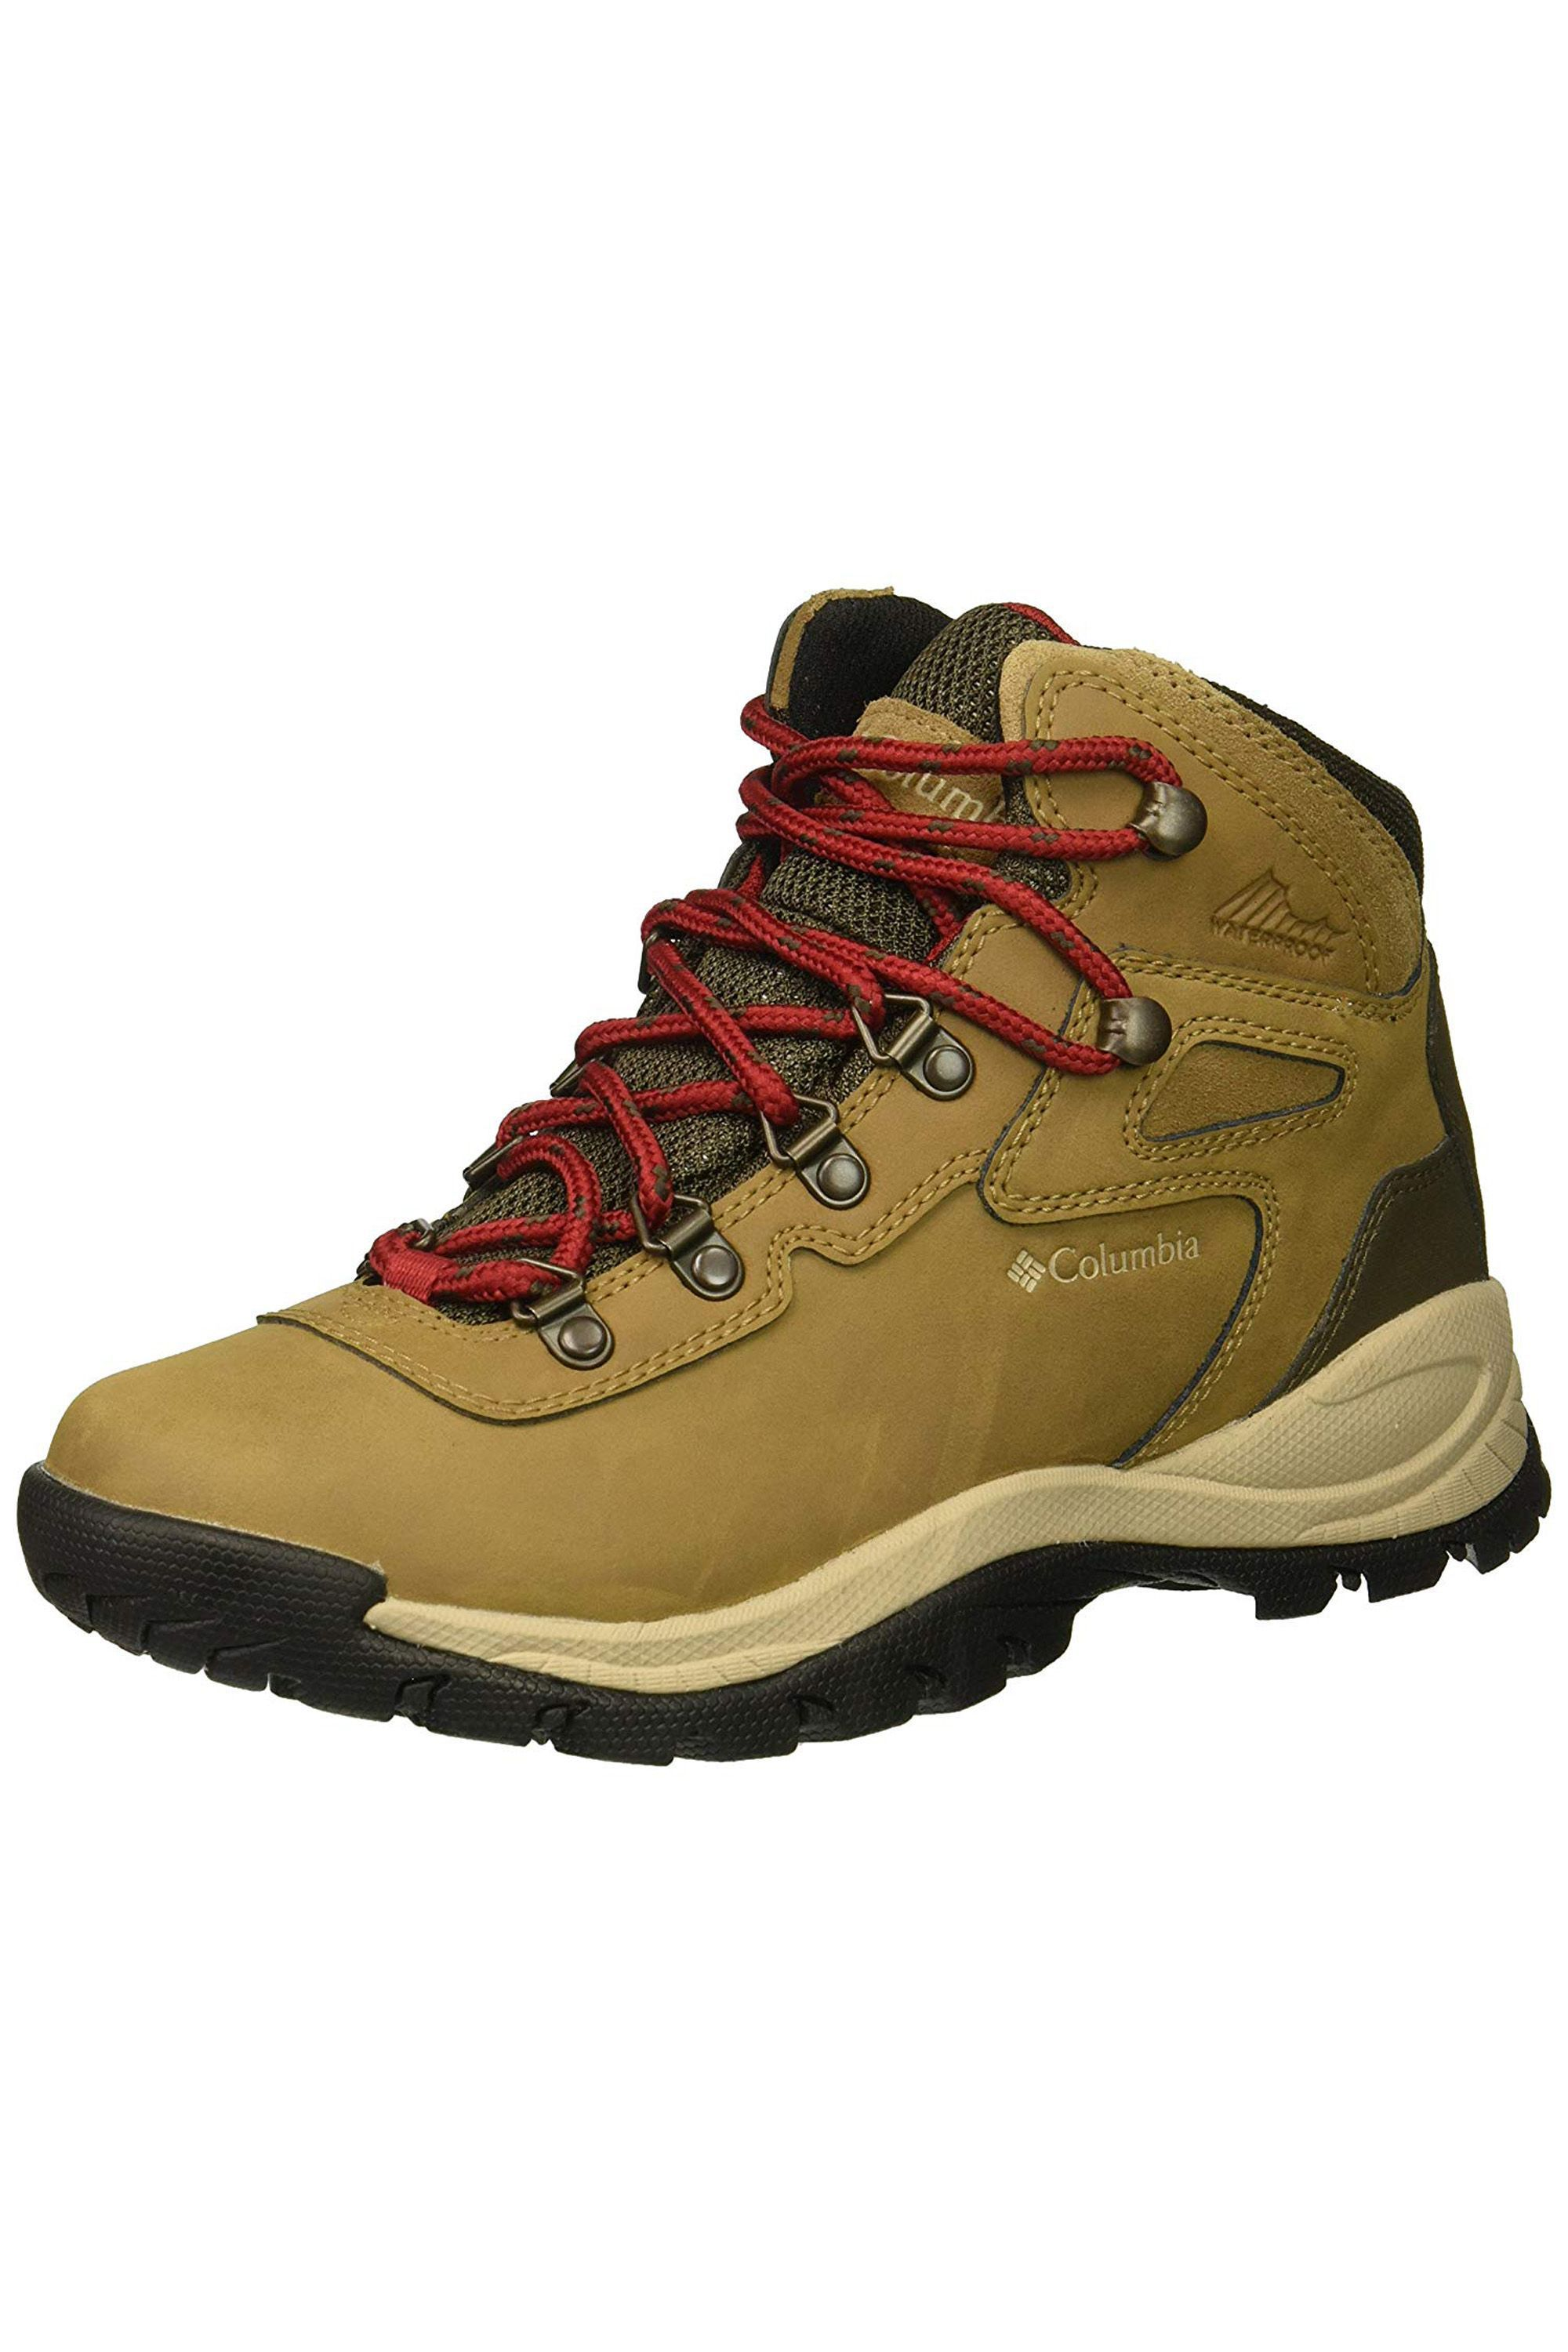 the latest 5d61f 11825 These Columbia Newton Ridge hiking boots will keep your feet warm all  winter long!